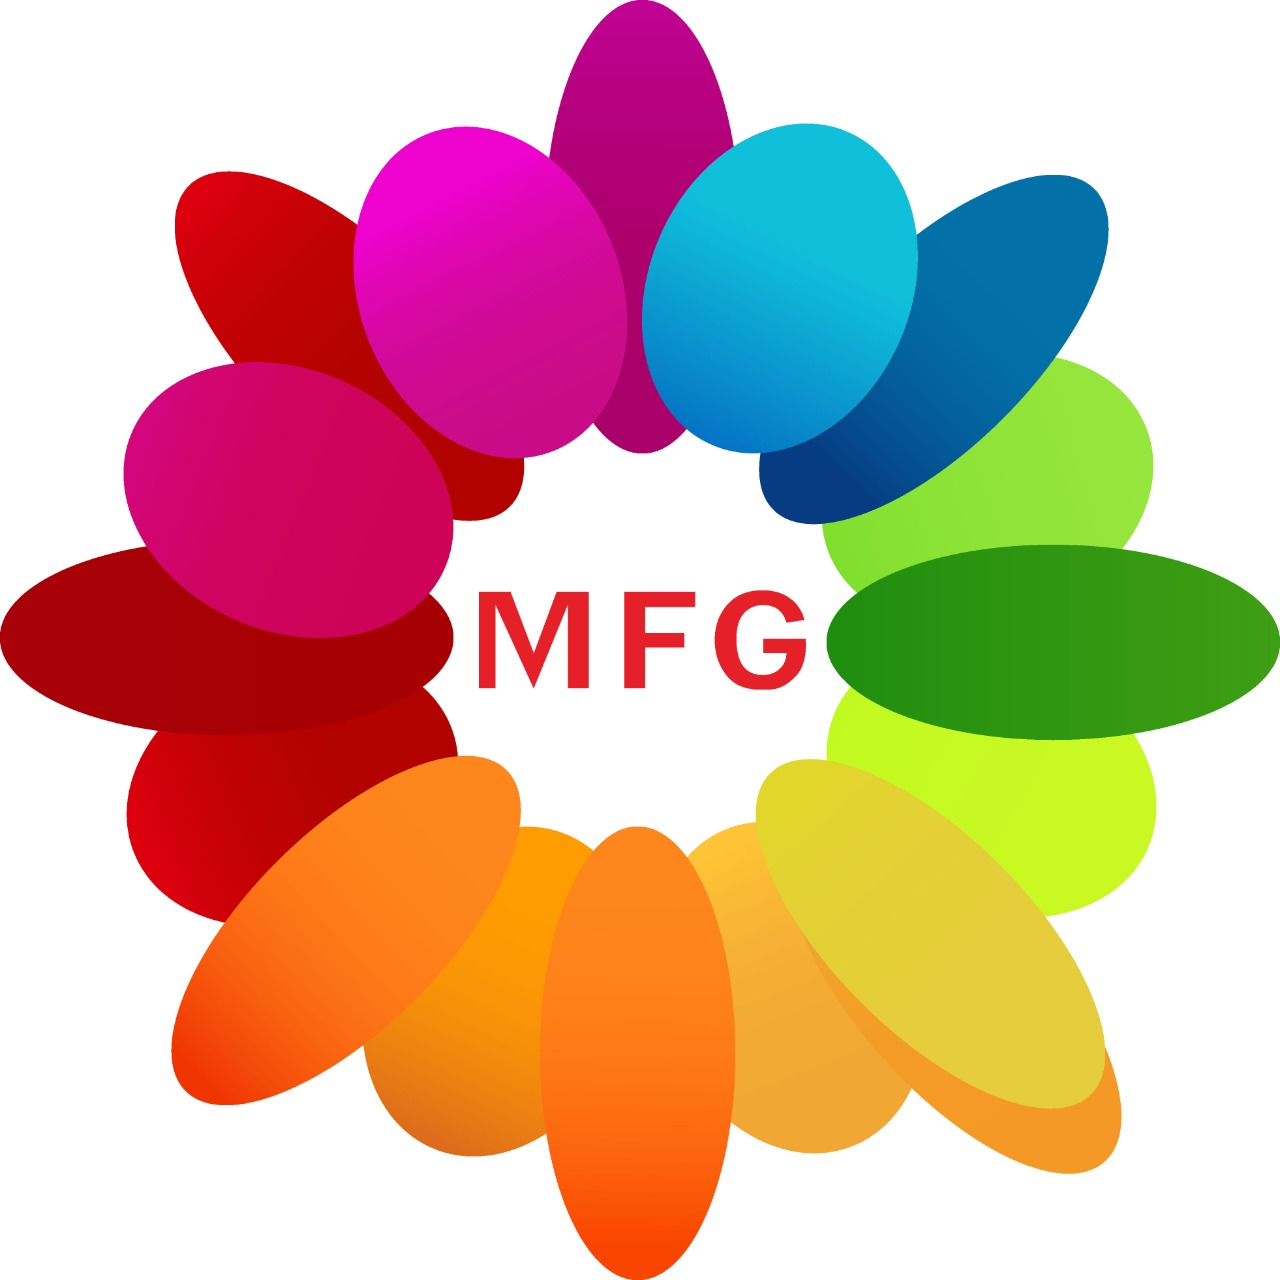 2kg fruit basket with bouquet of 5 pink and white lilies